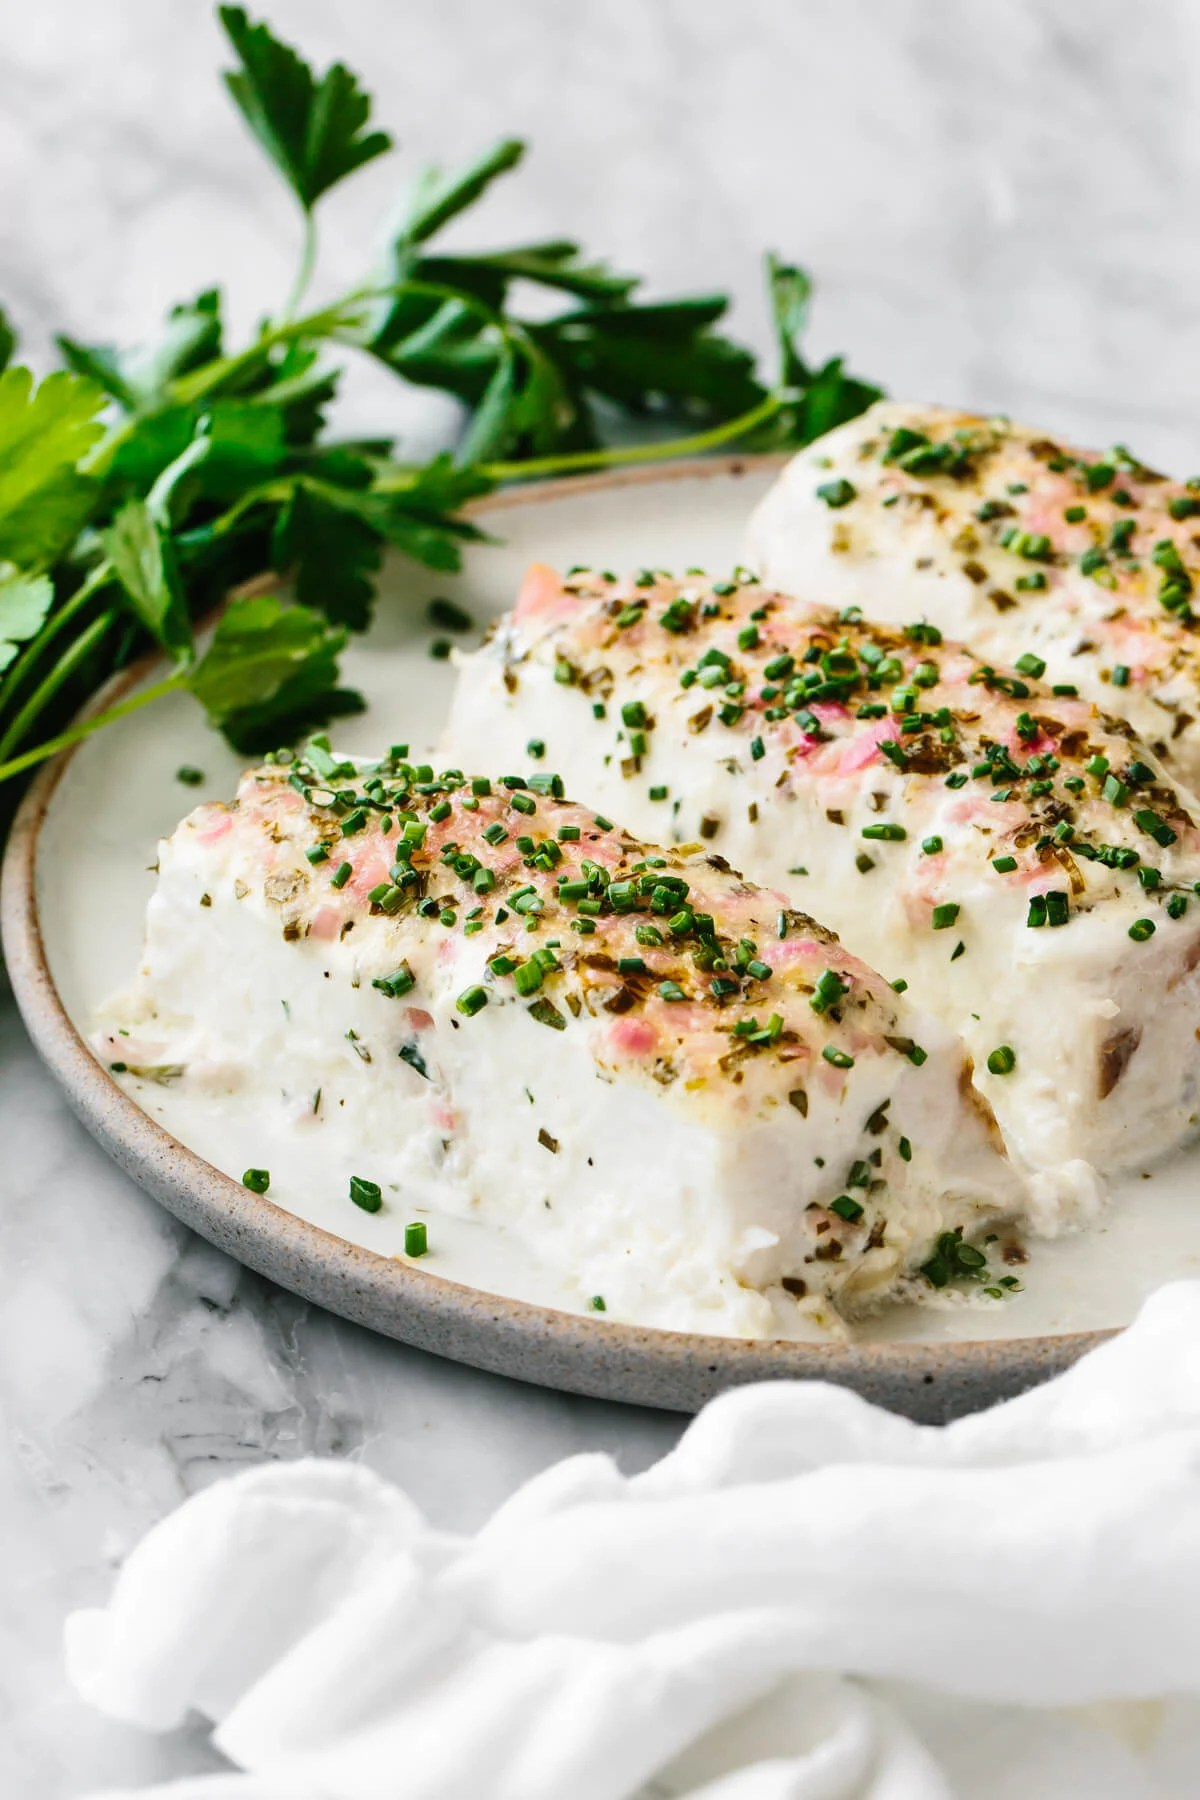 Baked halibut with herbed mayonnaise crust on a plate.